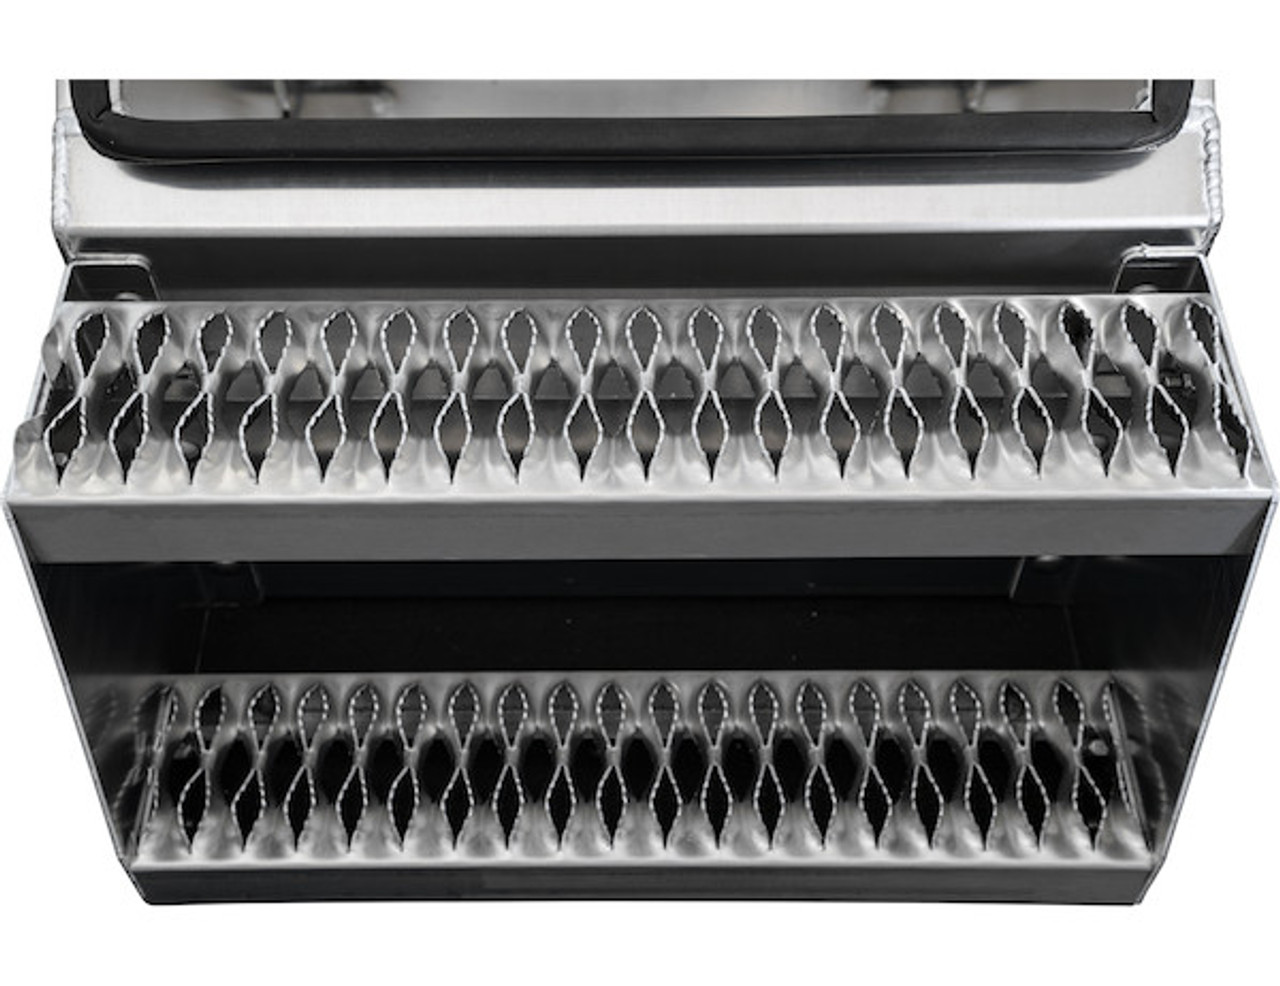 1705286 BUYERS PRODUCTS WideOpen™ Class 8 Step Tool Box For Semi Trucks - 22 Inch Width 6